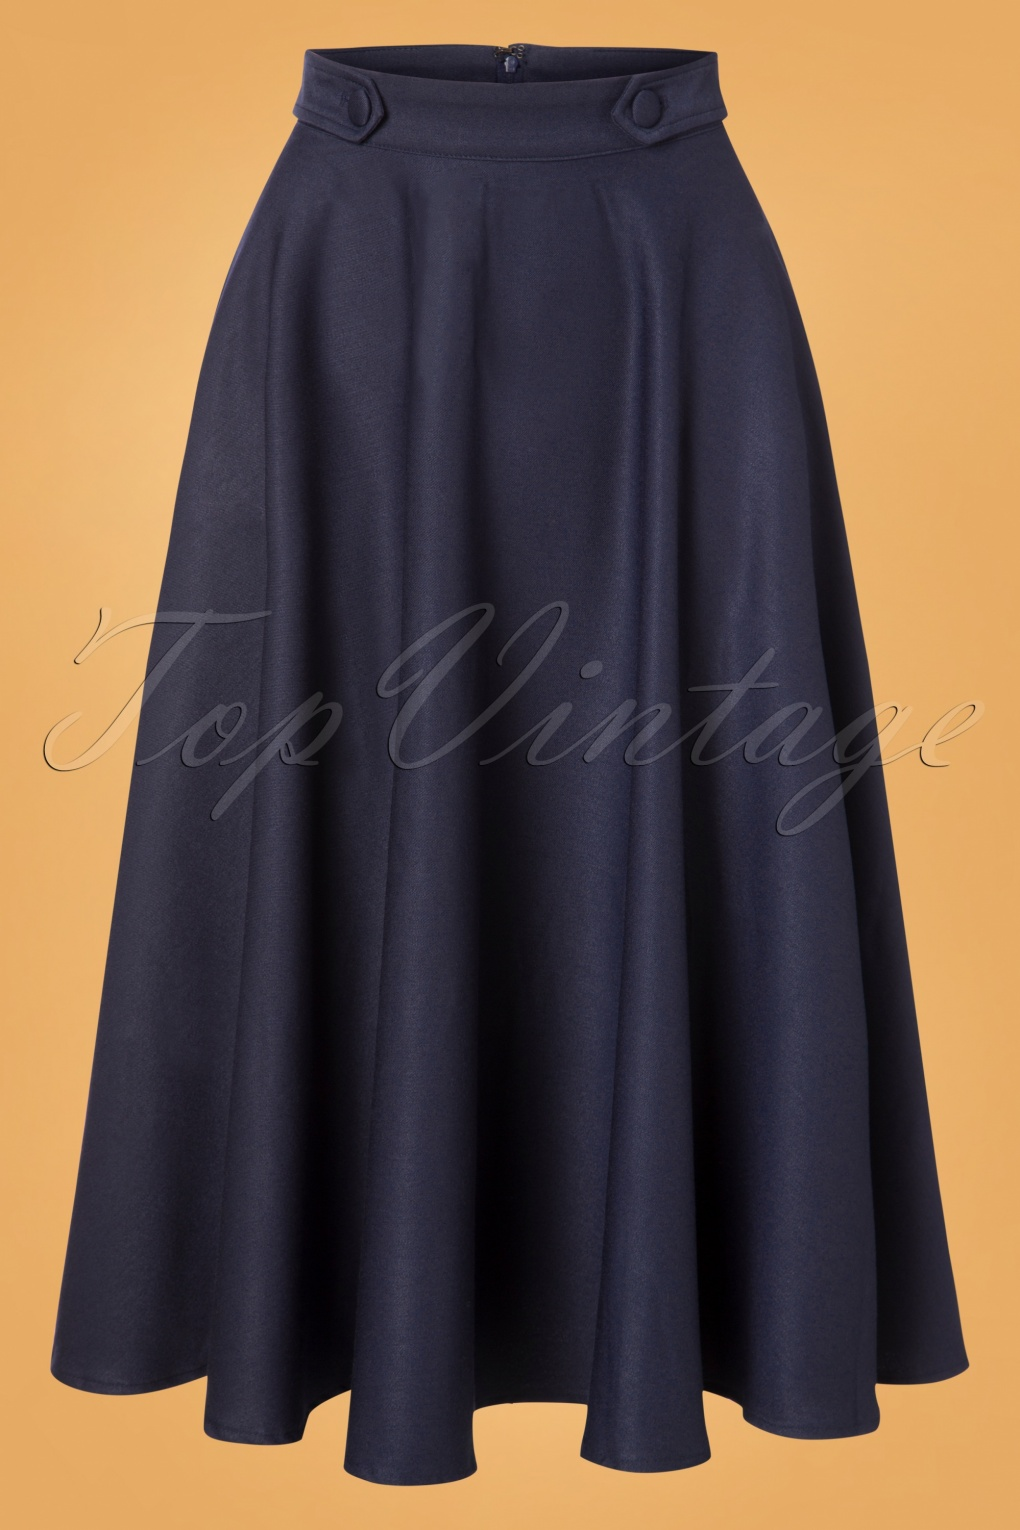 Retro Skirts: Vintage, Pencil, Circle, & Plus Sizes 50s Di Di Swing Skirt in Night Blue £36.50 AT vintagedancer.com